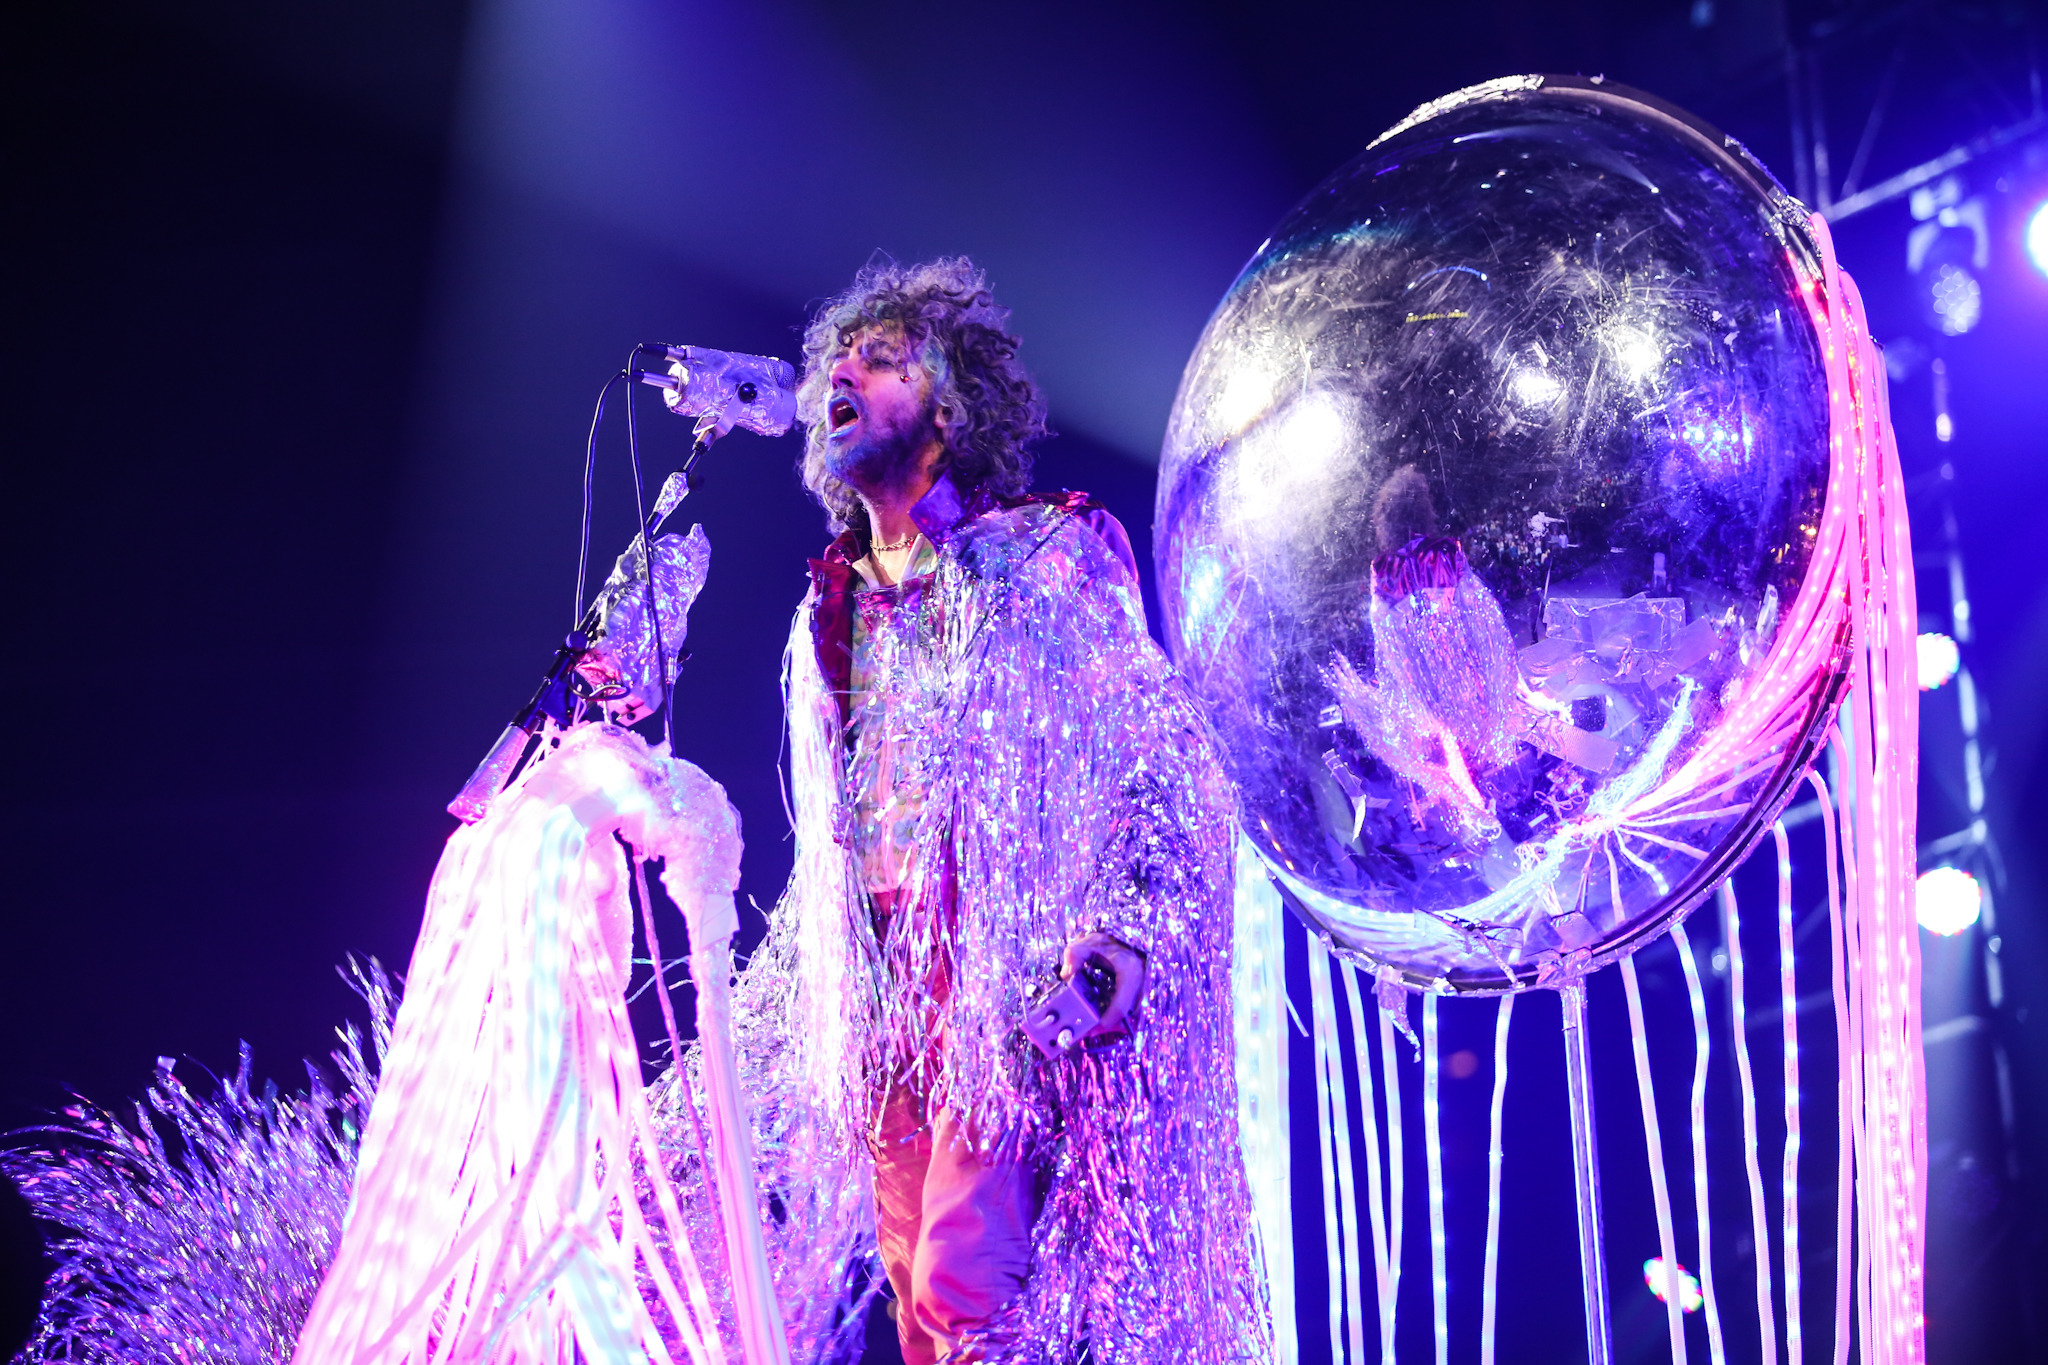 Wayne Coyne of The Flaming Lips performs onstage during the Amnesty International Concert at Barclays Center